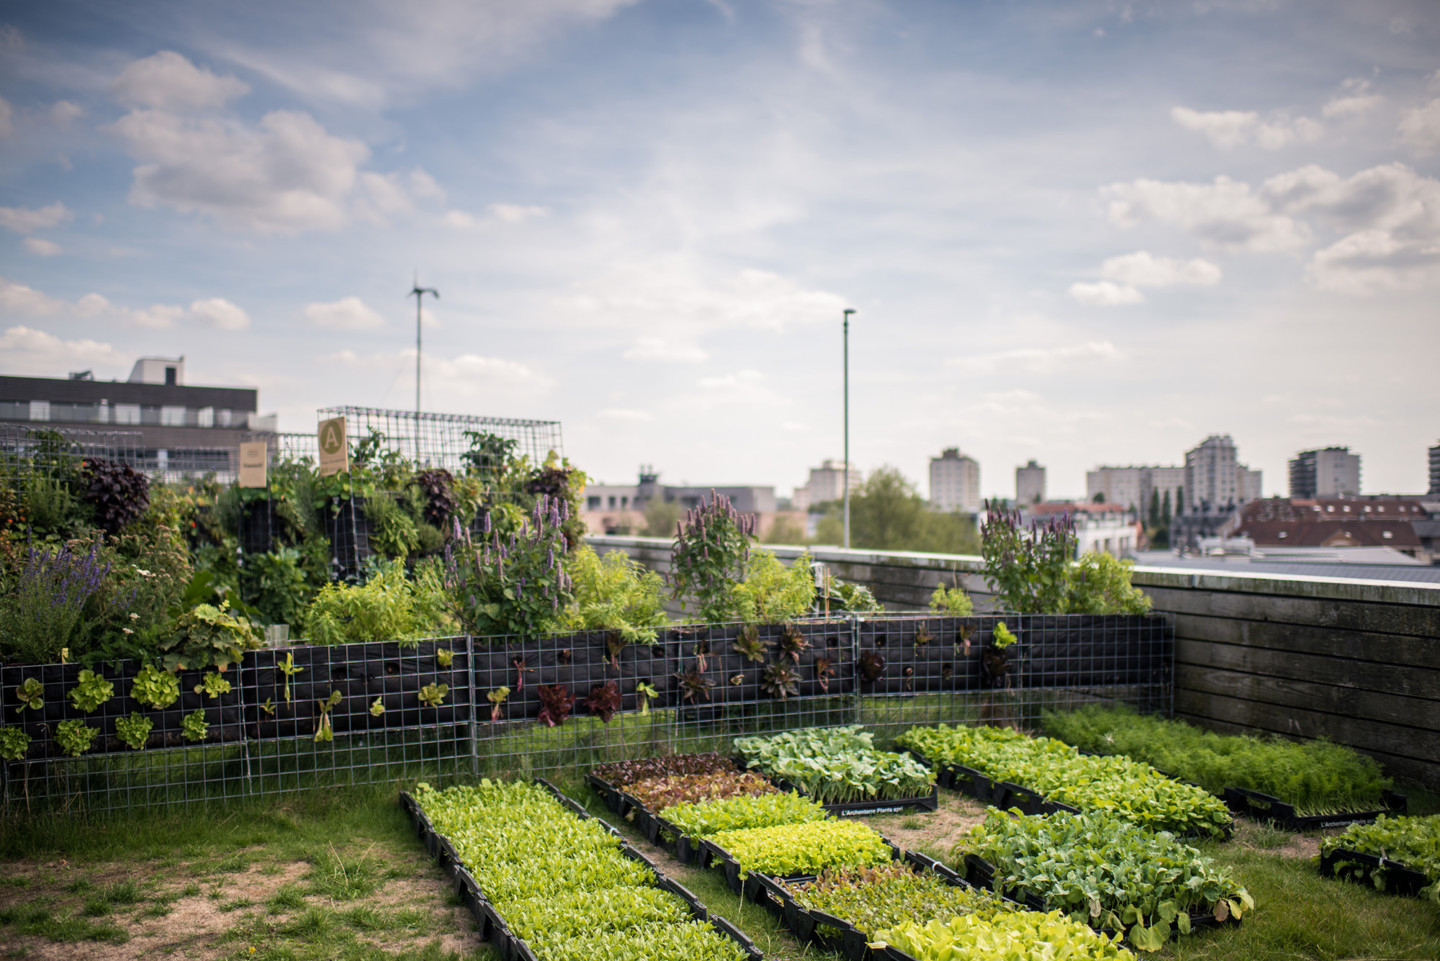 rooftop allotments are shown in an urban setting